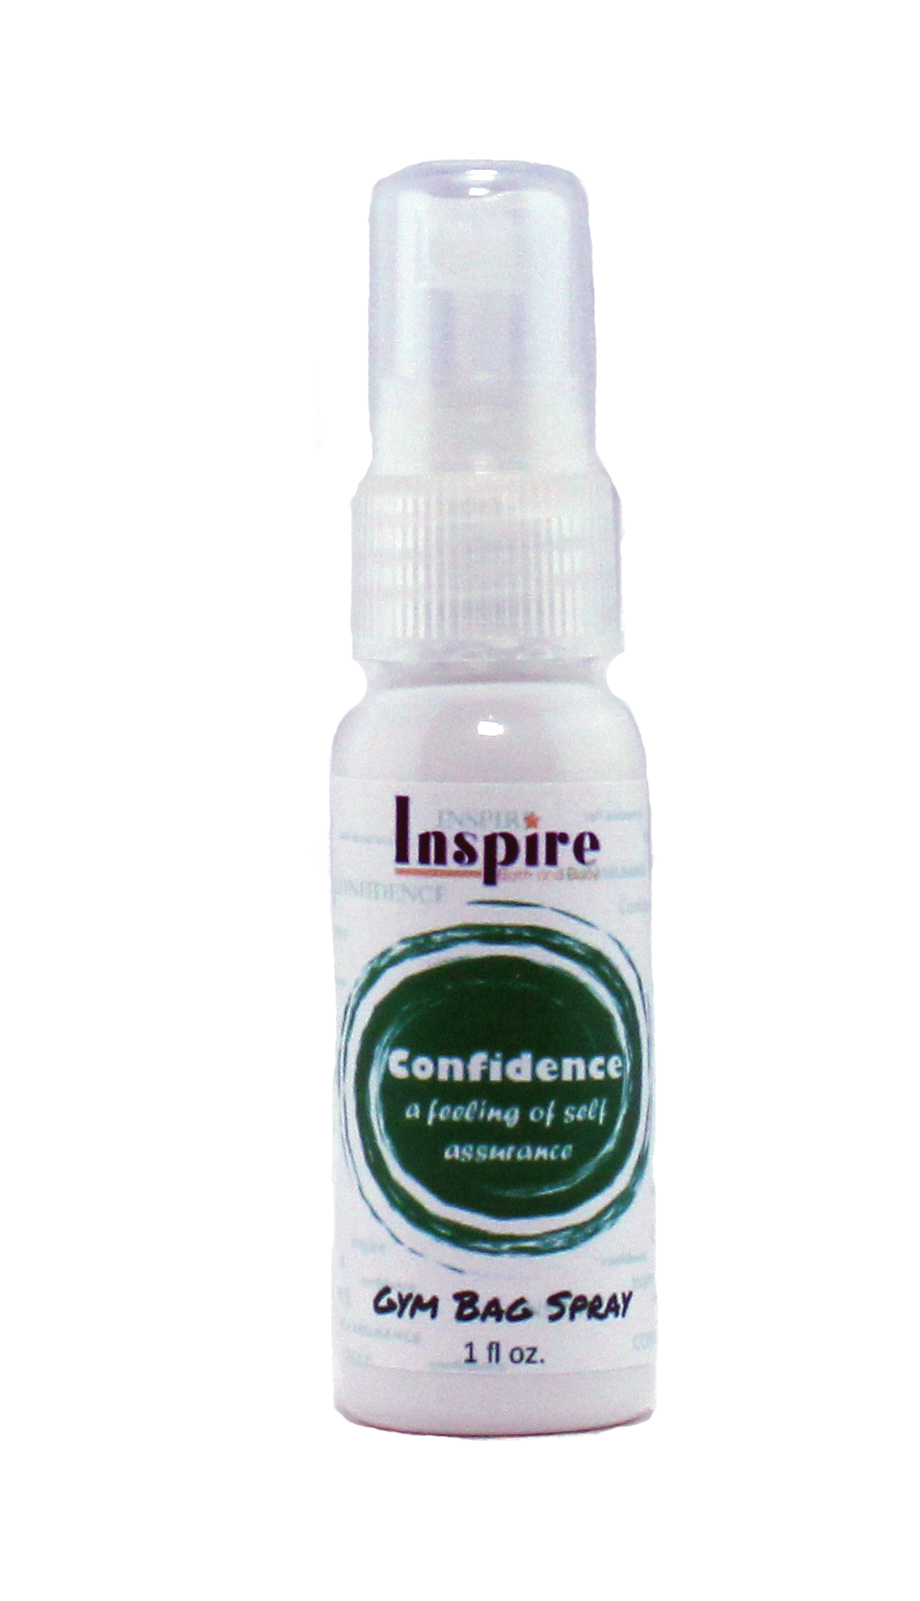 Confidence Gym Bag Spray